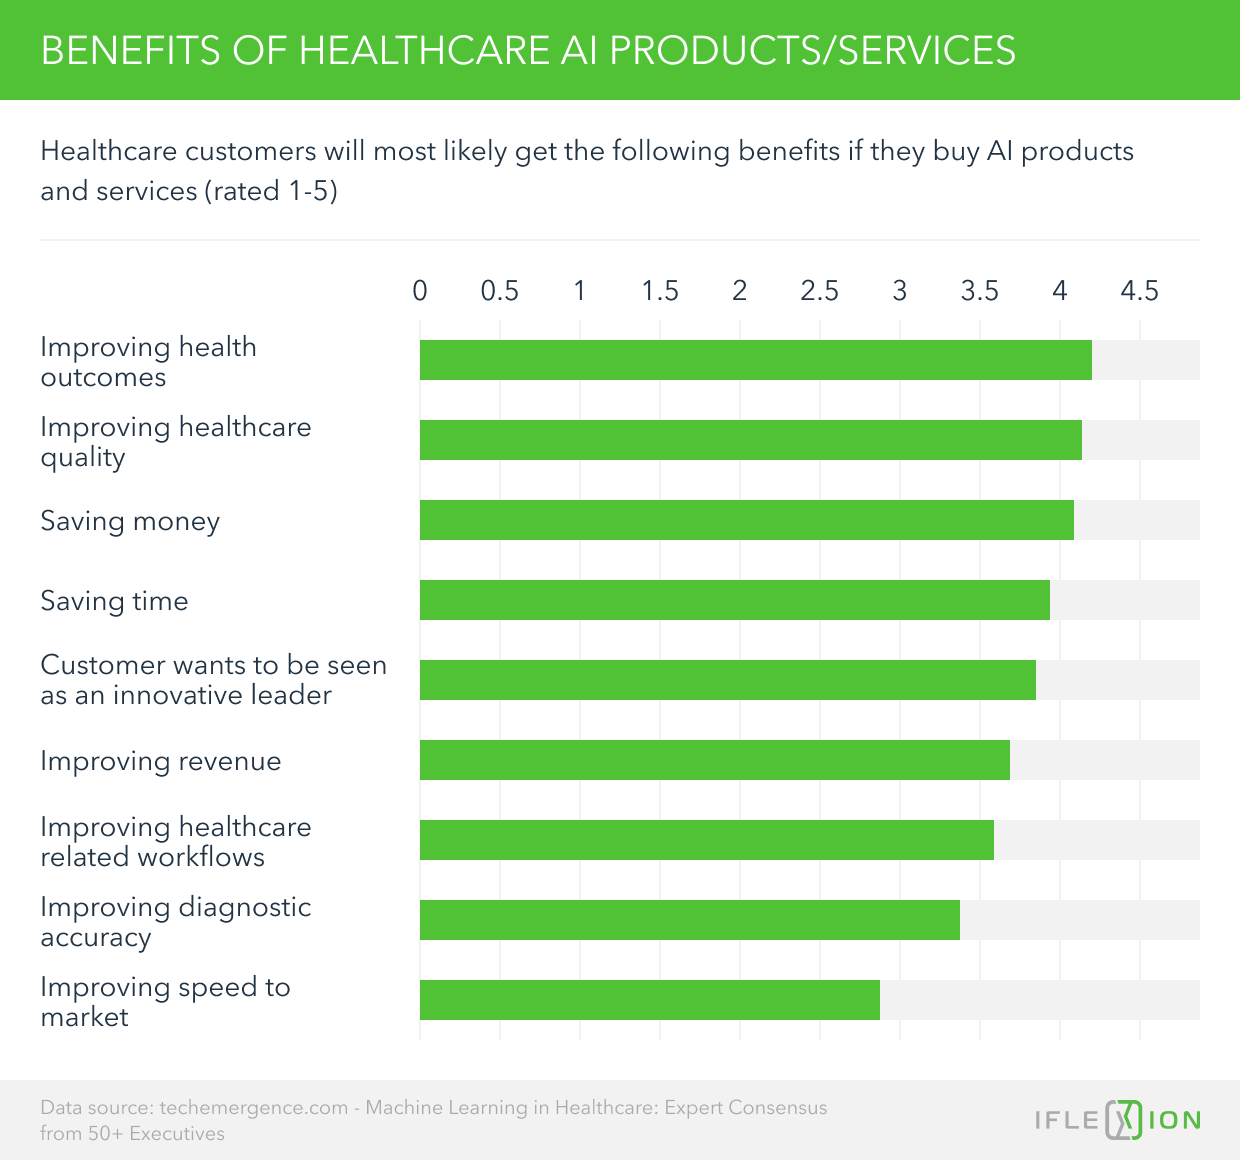 Benefits of Healthcare AI Products/Services